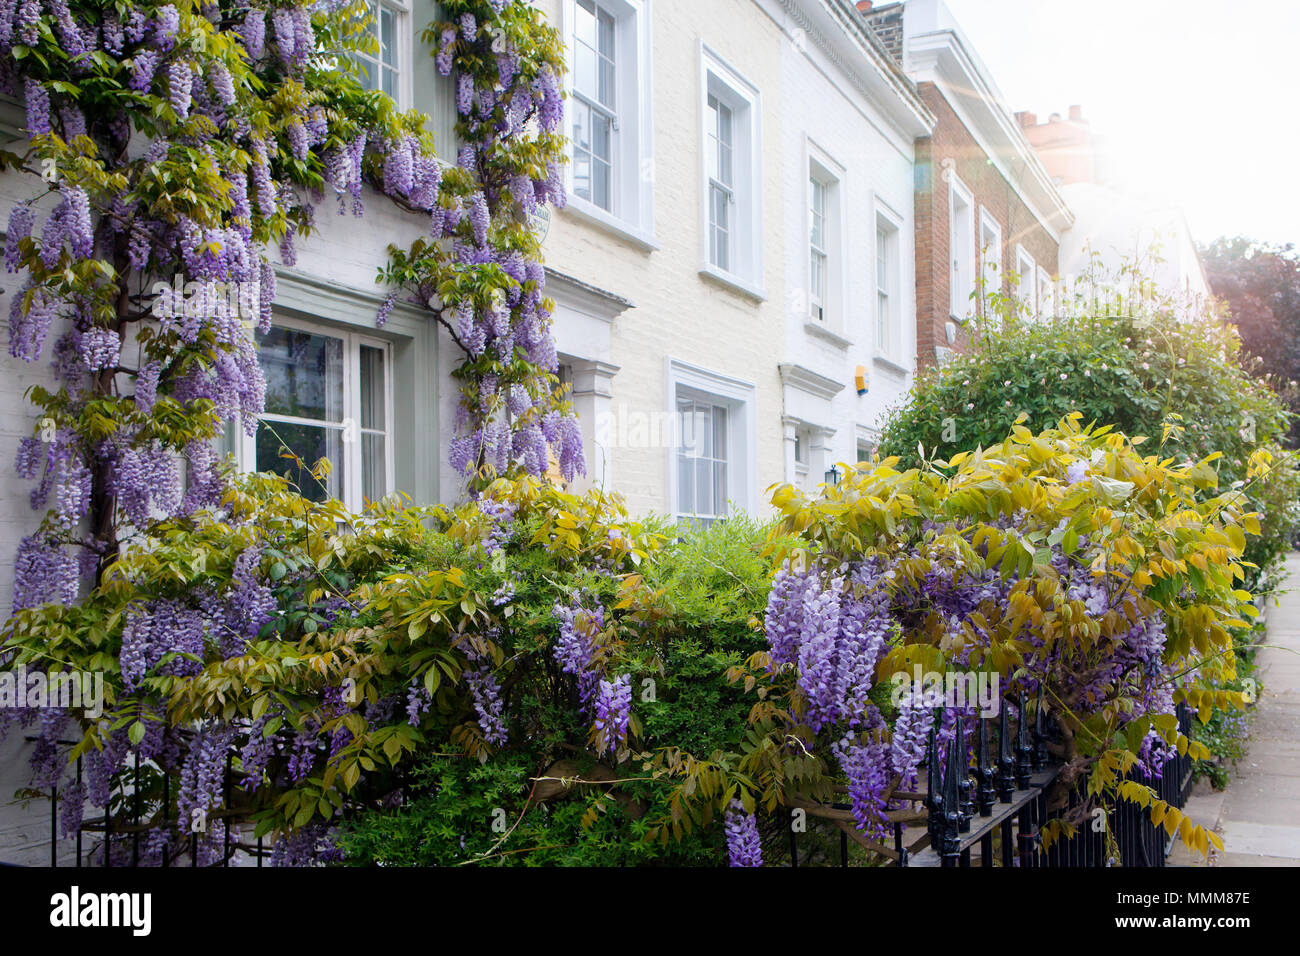 LONDON, UK - MAY 10th, 2018: Blooming wisteria is covering a building in Central London, near affleunt area of Notting Hill. - Stock Image